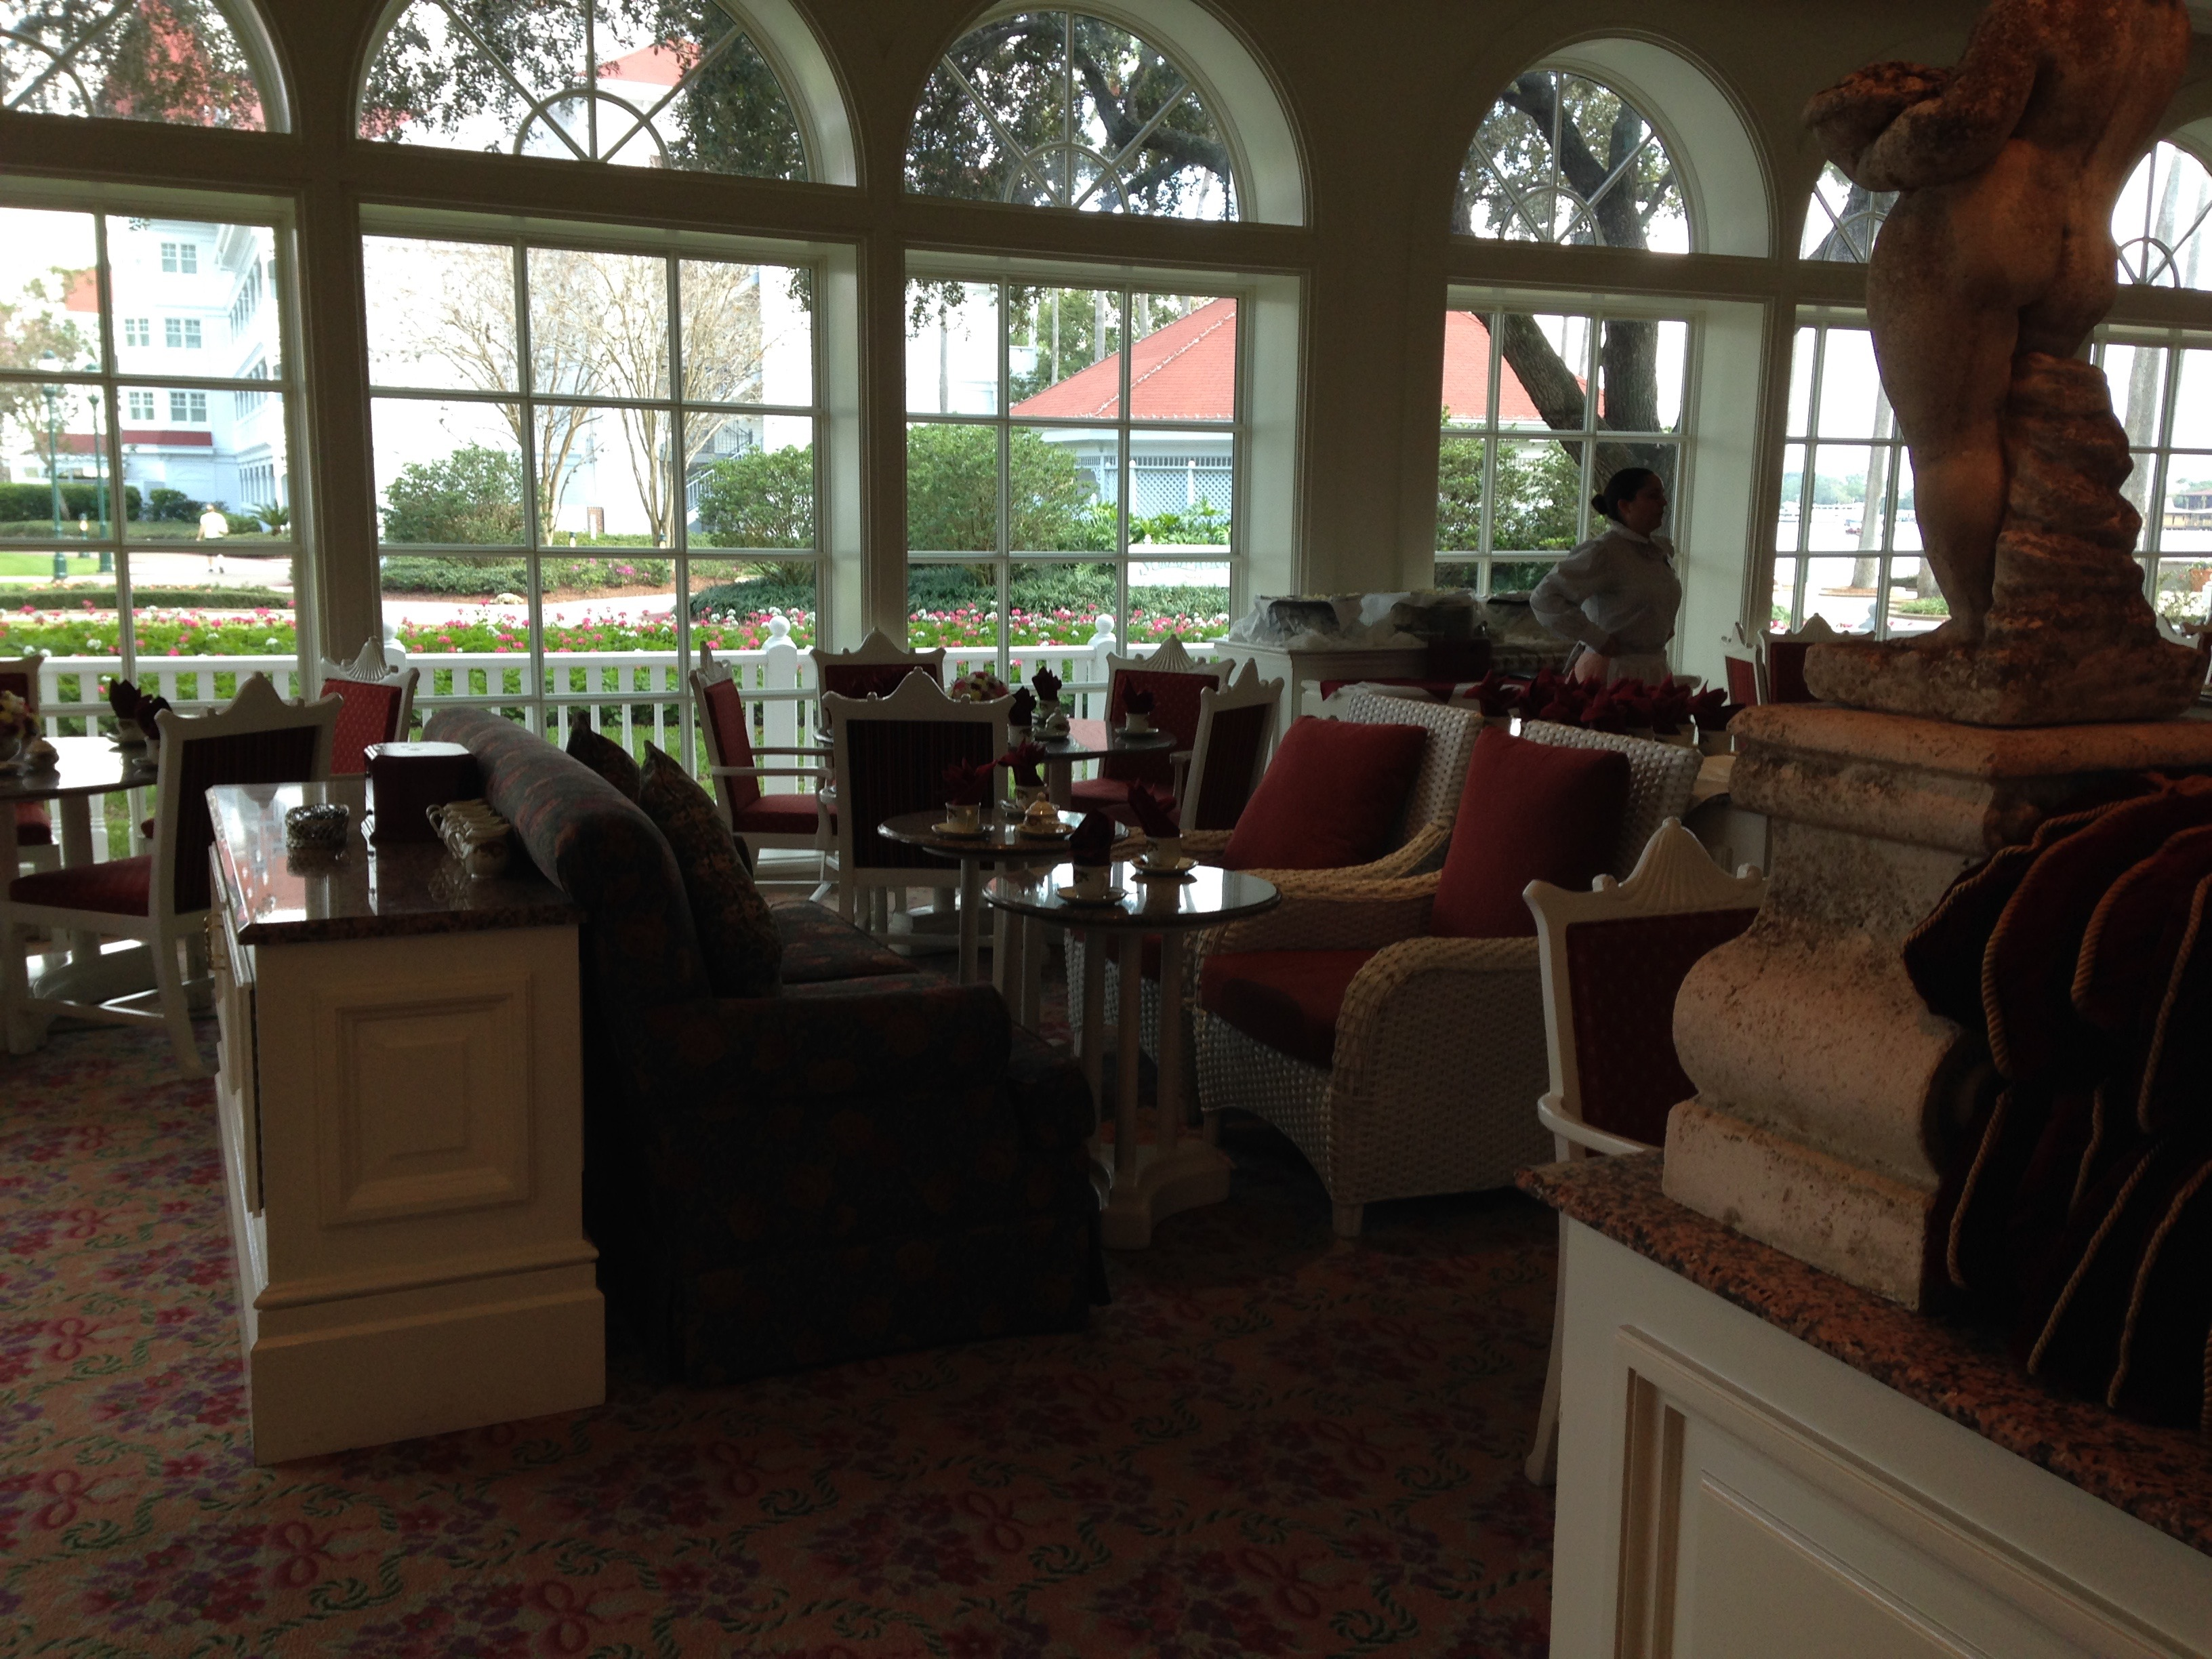 Review The Garden View Tea Room At The Grand Floridian Resort Walt Disney World Once Upon An